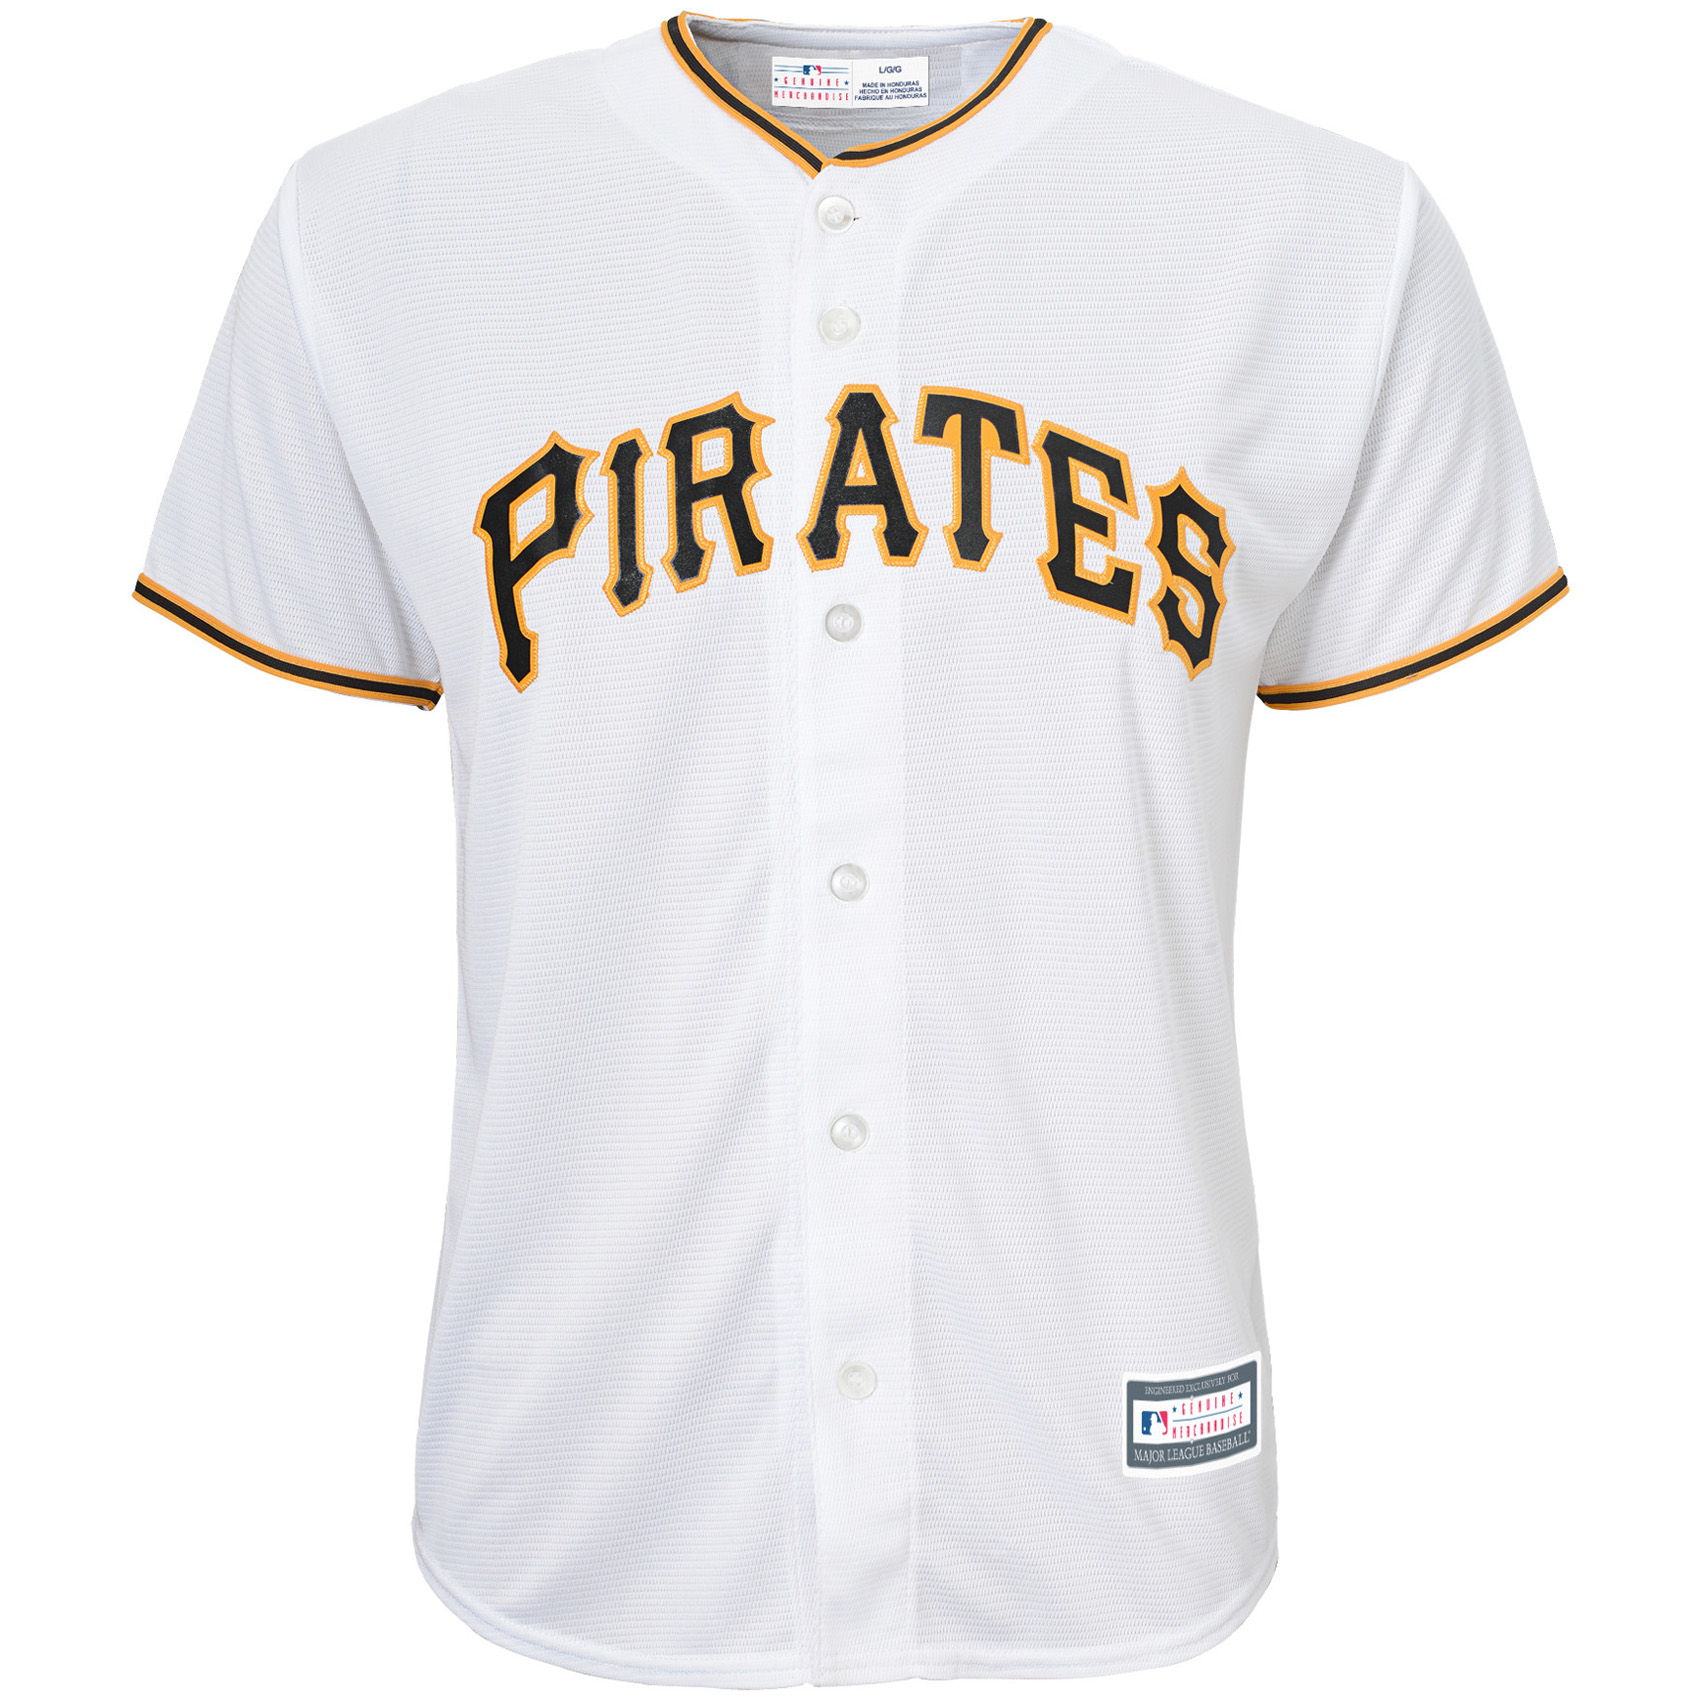 Pittsburgh Pirates Youth Replica Blank Team Jersey - White